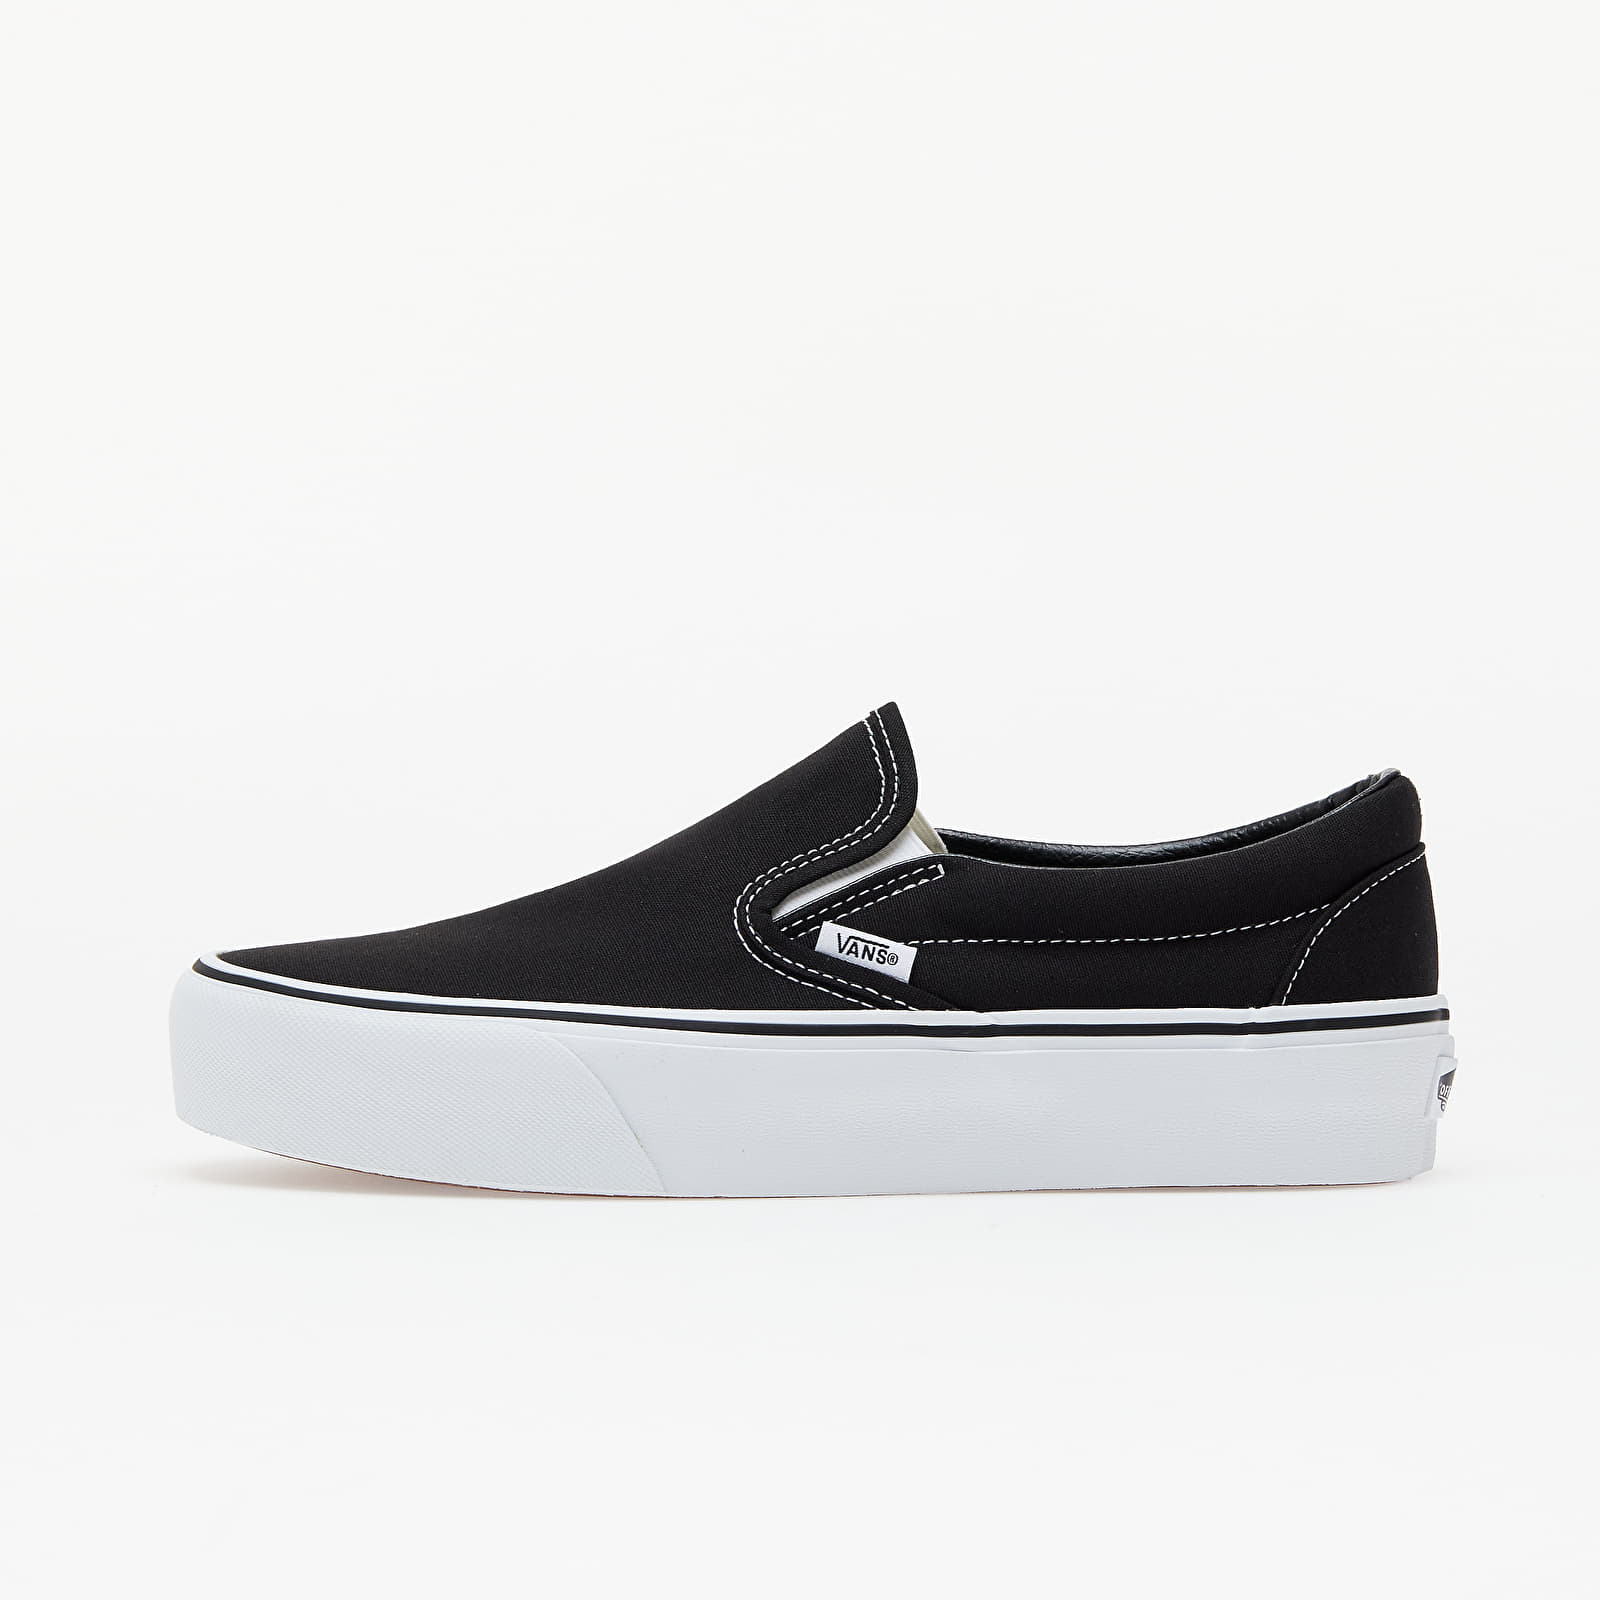 Chaussures et baskets femme Vans Classic Slip-On Platform Black